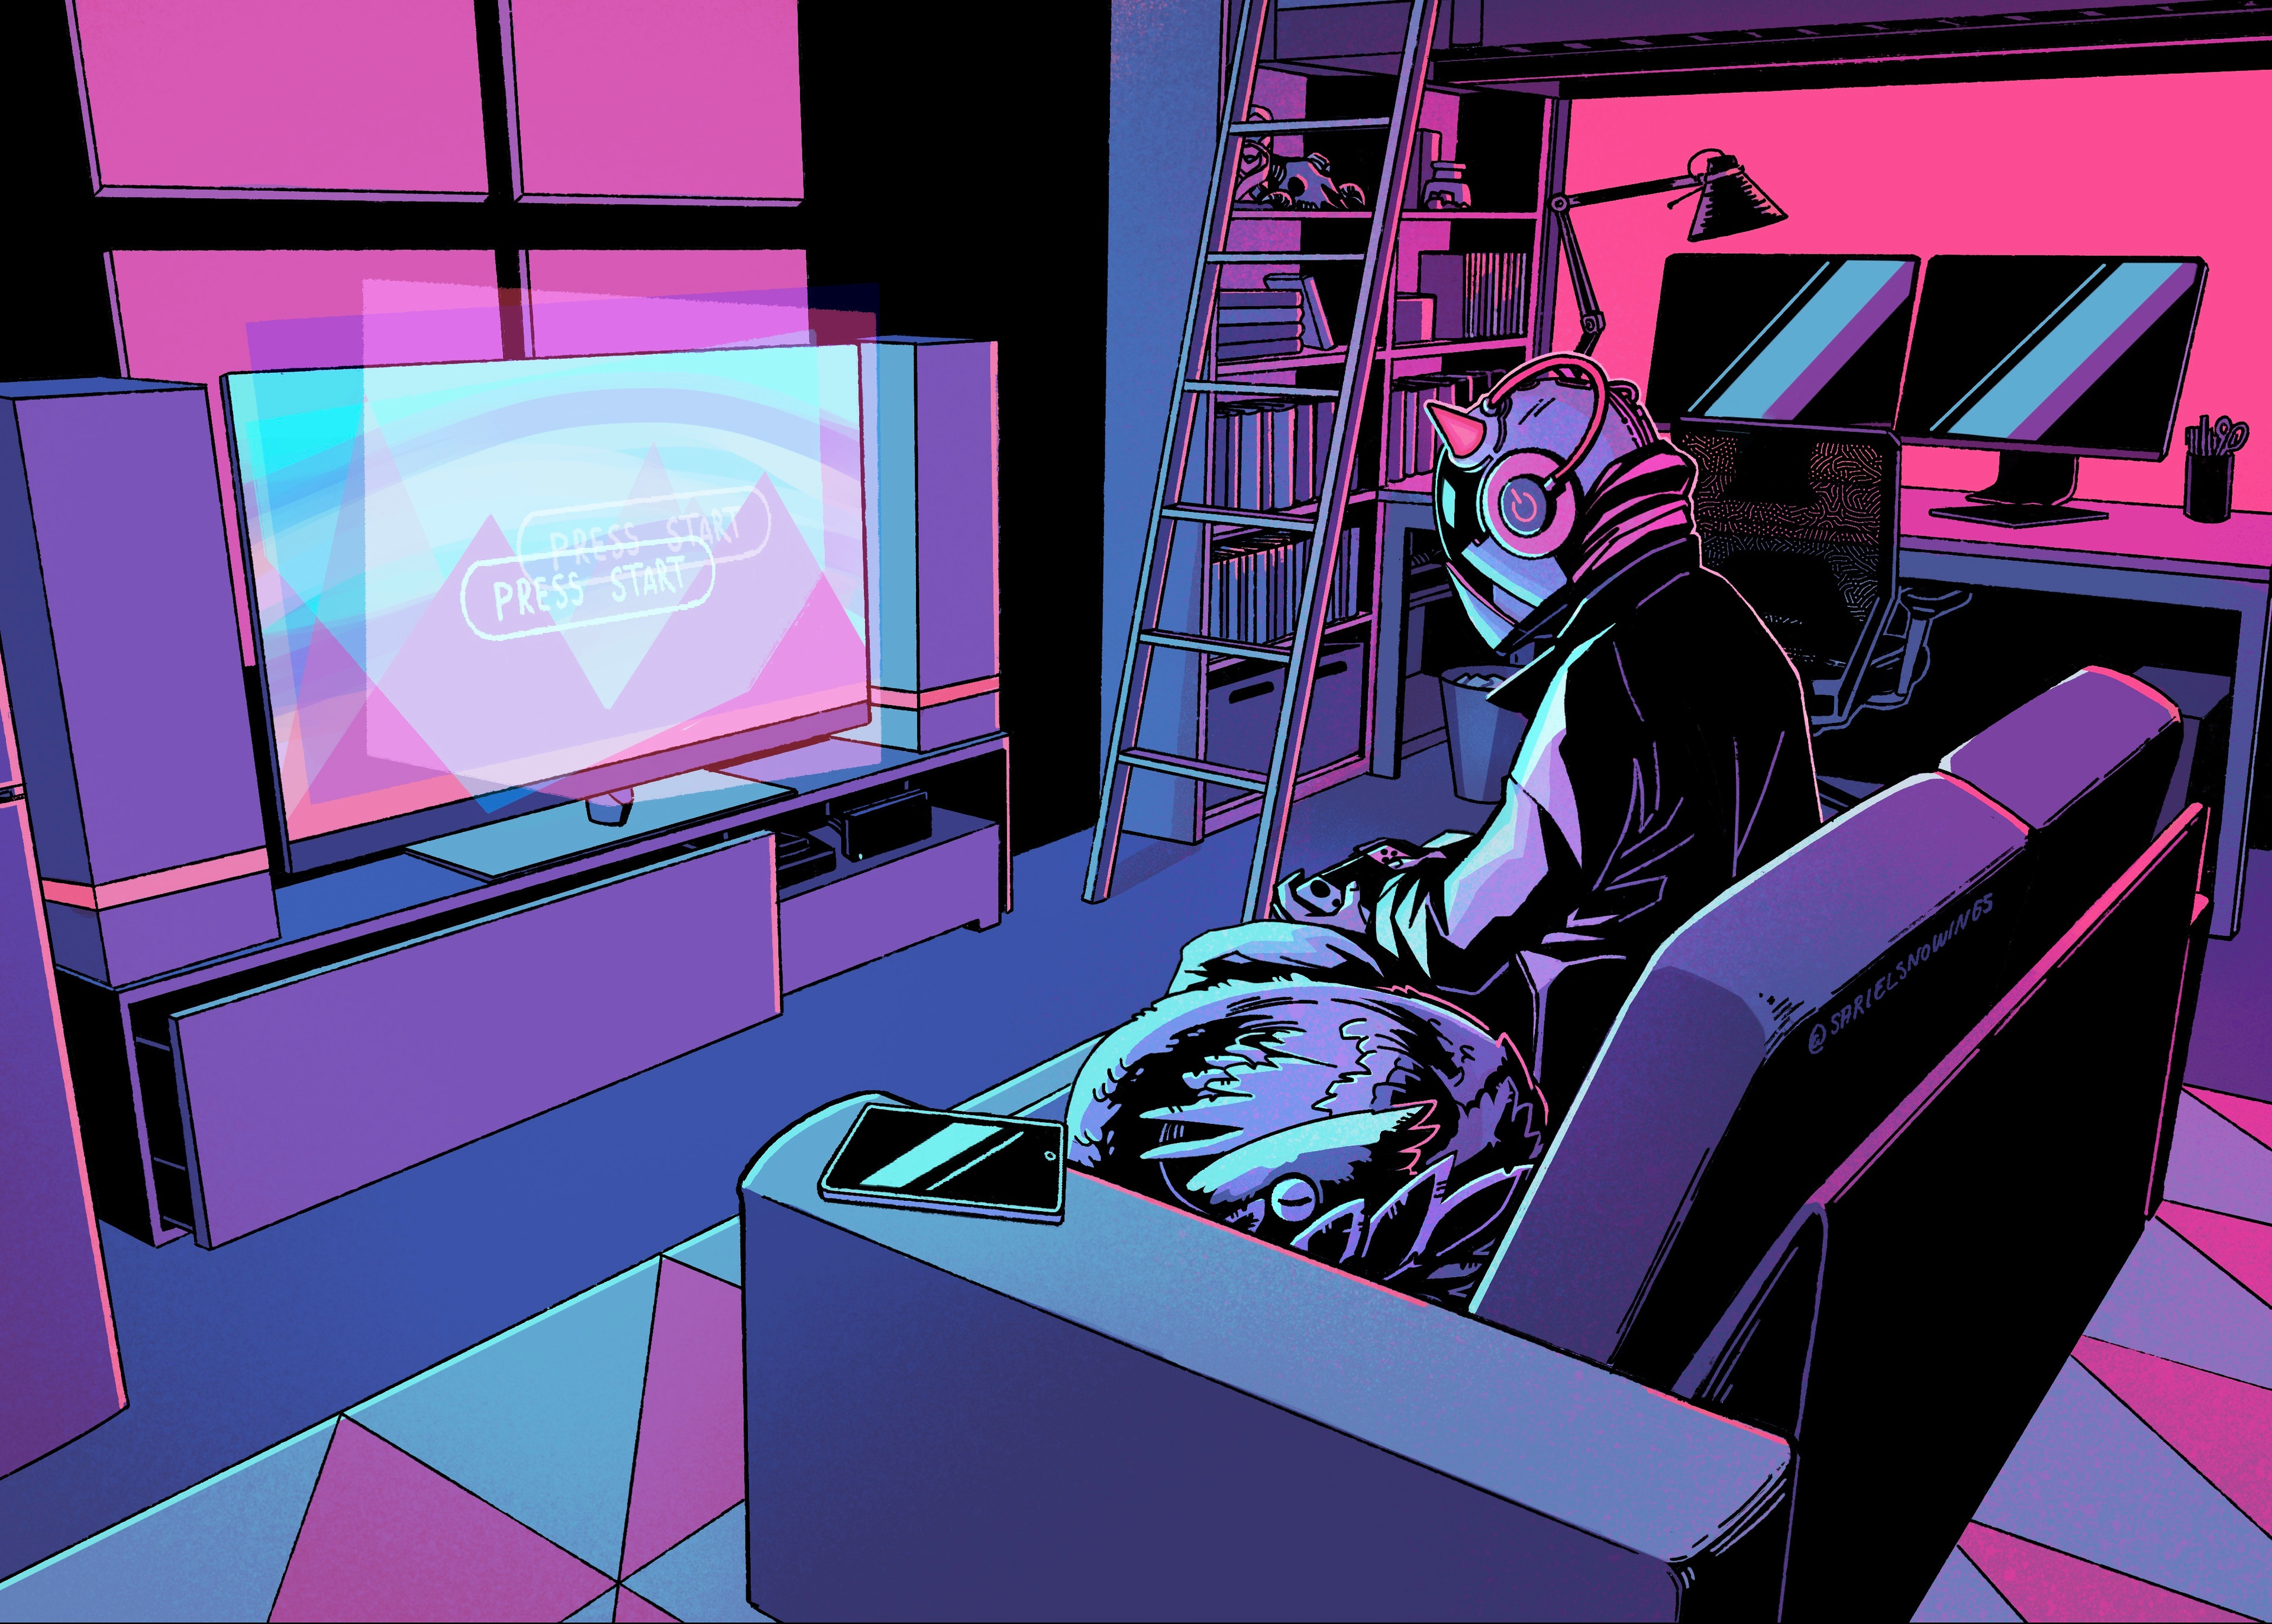 Final illustration. I'm so happy with the colours and lighting